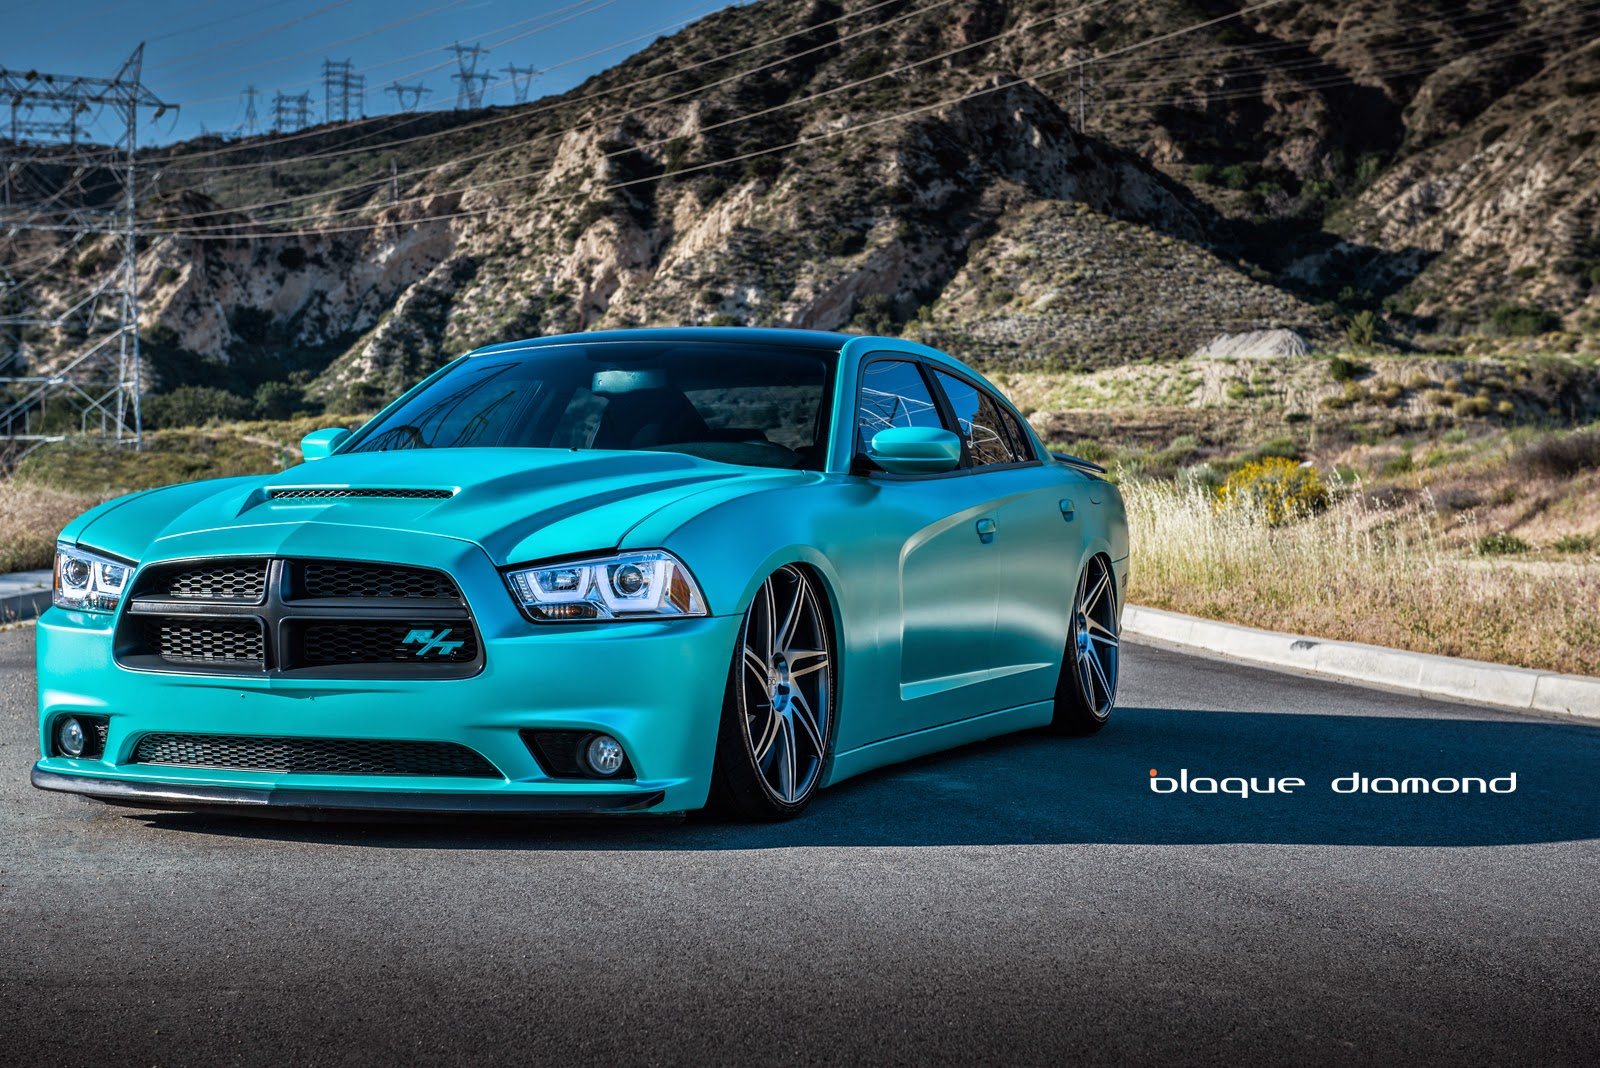 Matte Black Hellcat Charger >> 2013 Dodge Charger Daytona with 22 Inch BD-1's in Matte Graphite Machine Face